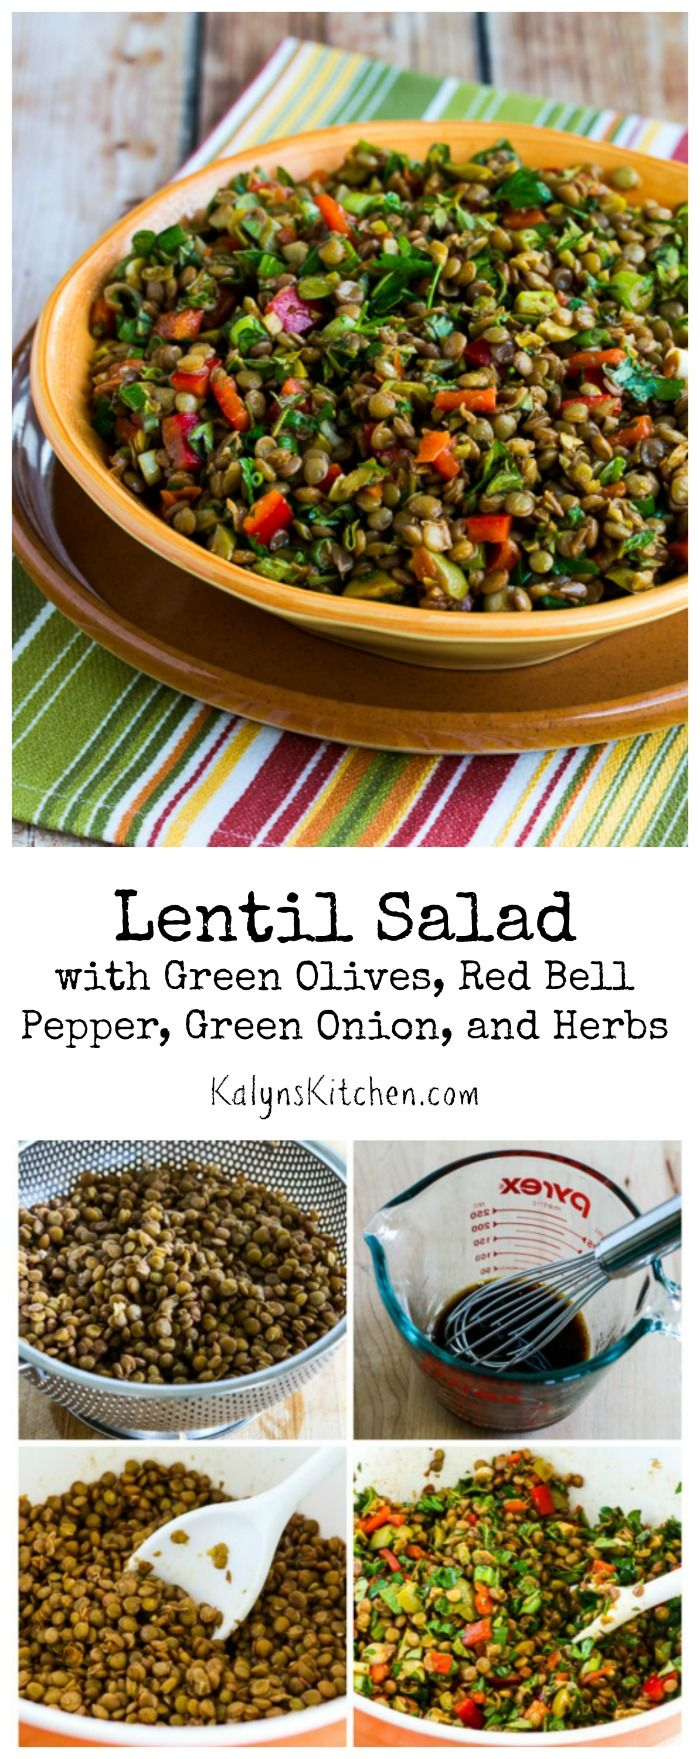 If you're looking for a salad that will be something new for a summer holiday party or picnic, this Lentil Salad with Green Olives, Red Bell Pepper, Green Onion, and Herbs is delicious! The salad can be eaten cold or at room temperature, and it's #Vegan and #Gluten Free. [from KalynsKitchen.com]